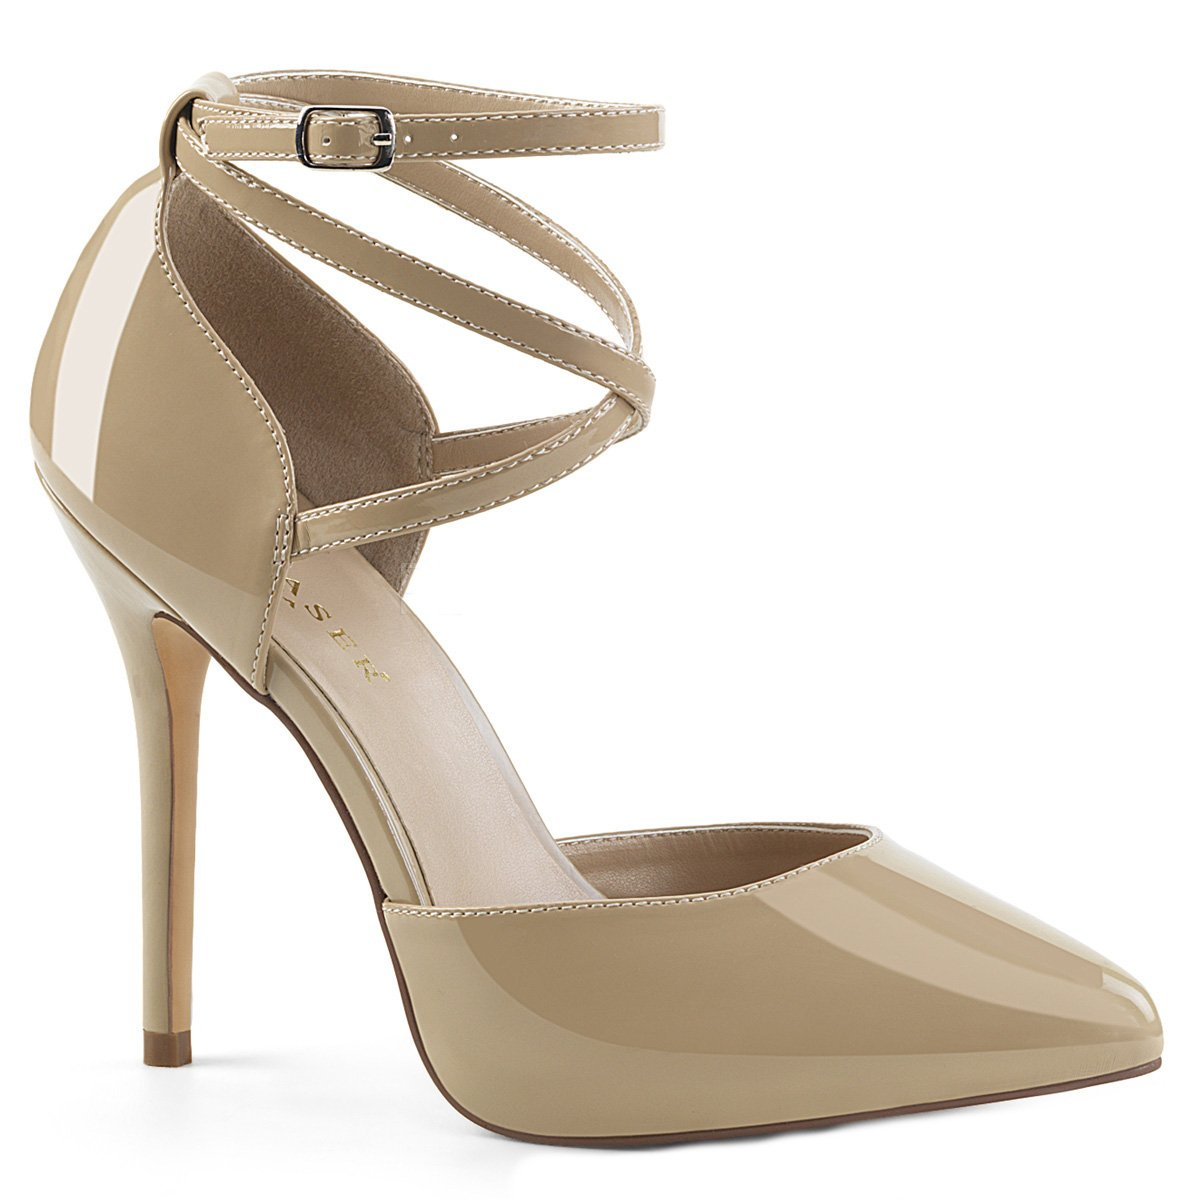 071c785d9e Higher Heels PleaserUSA Womens High Heels Courts Amuse-25 cream patent:  Amazon.co.uk: Shoes & Bags